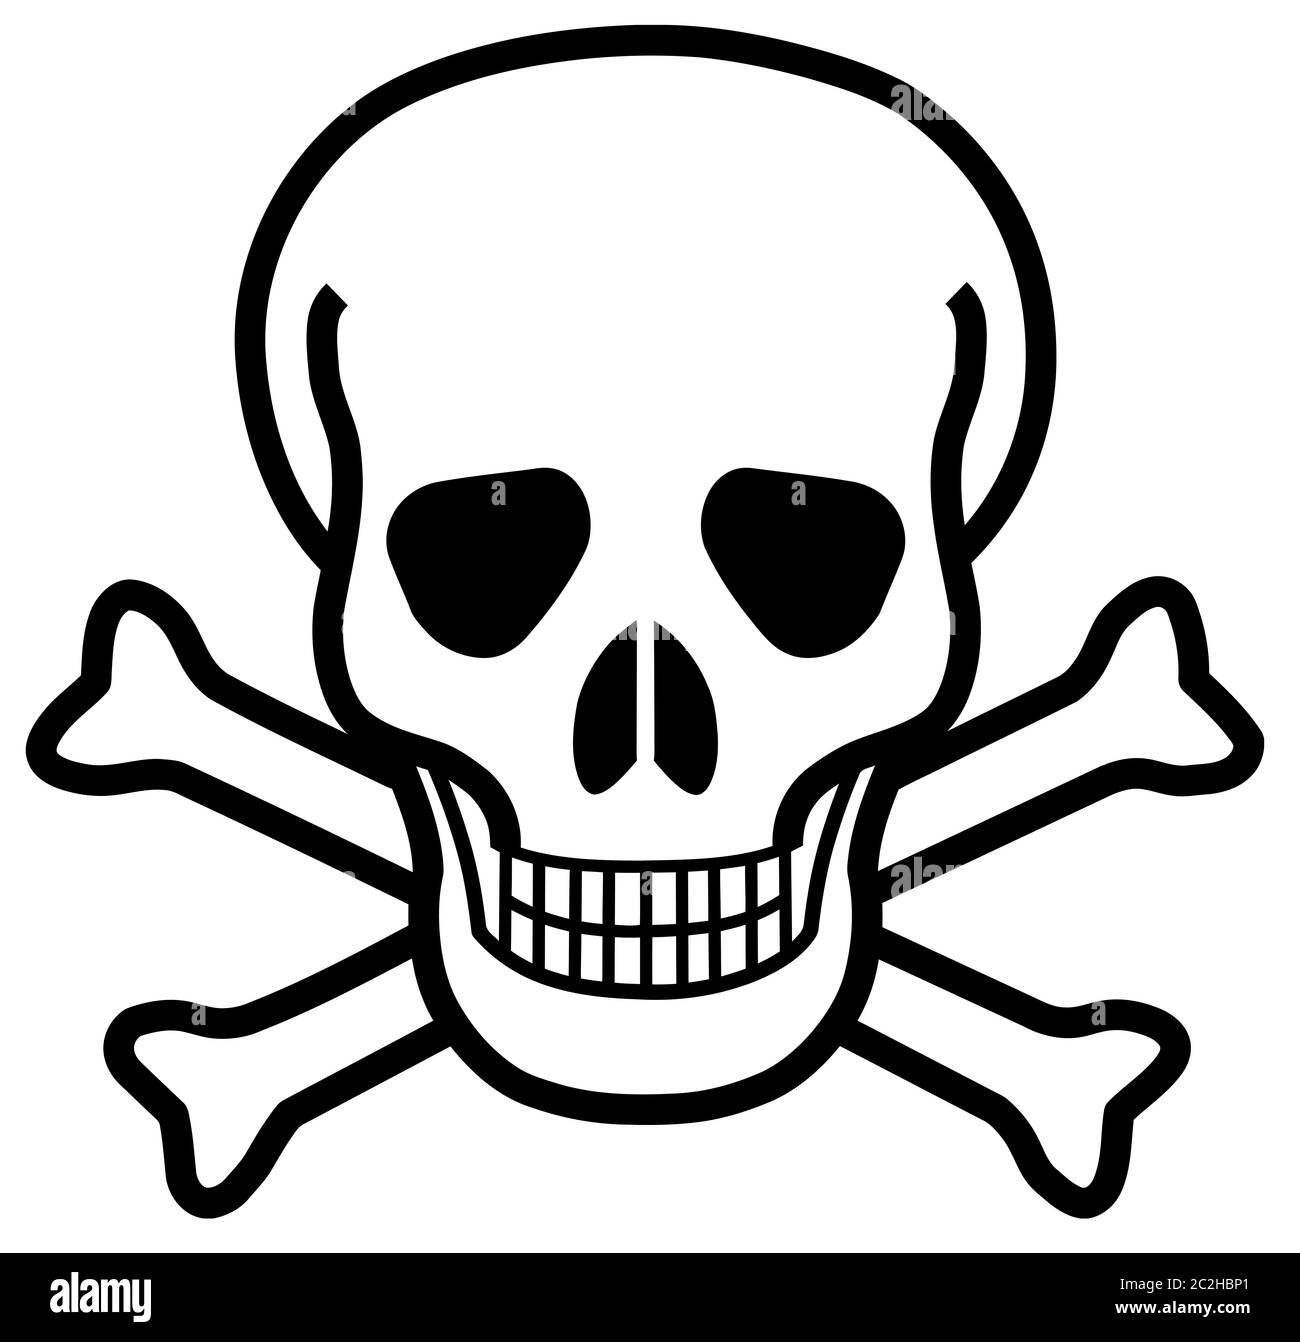 Skull Cross Bones Tattoo High Resolution Stock Photography And Images Alamy